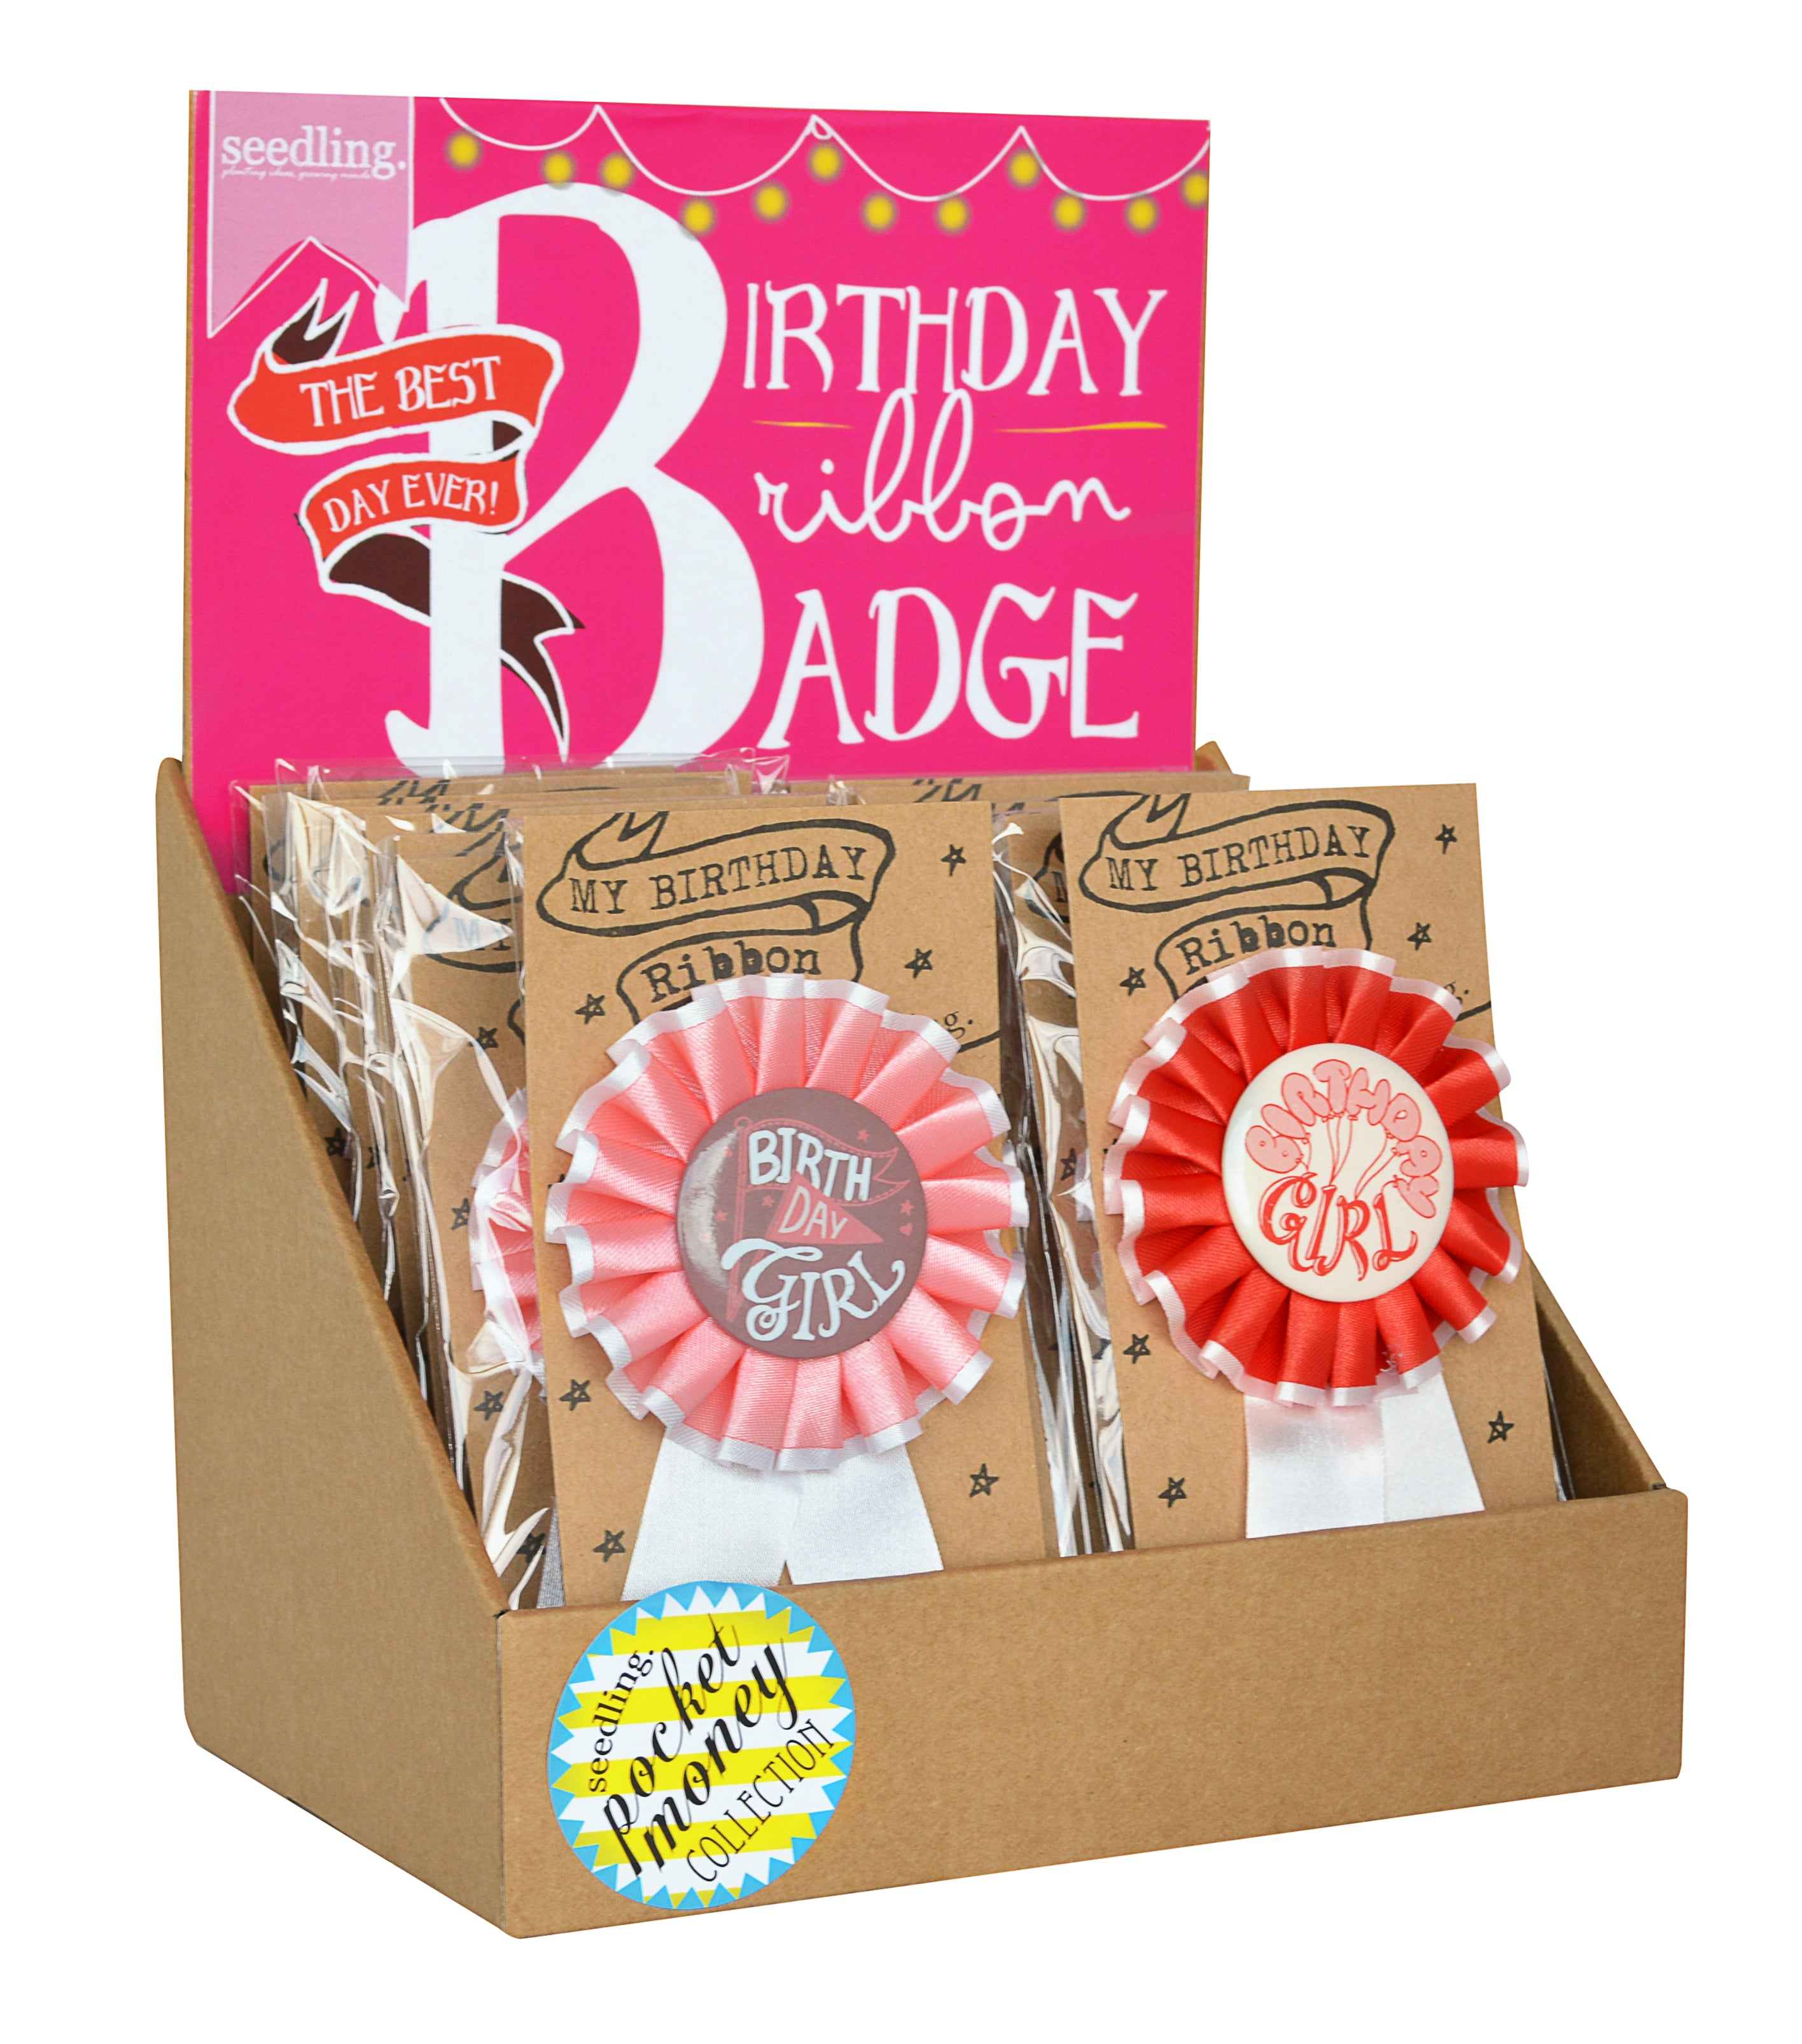 Birthday Ribbon Badge